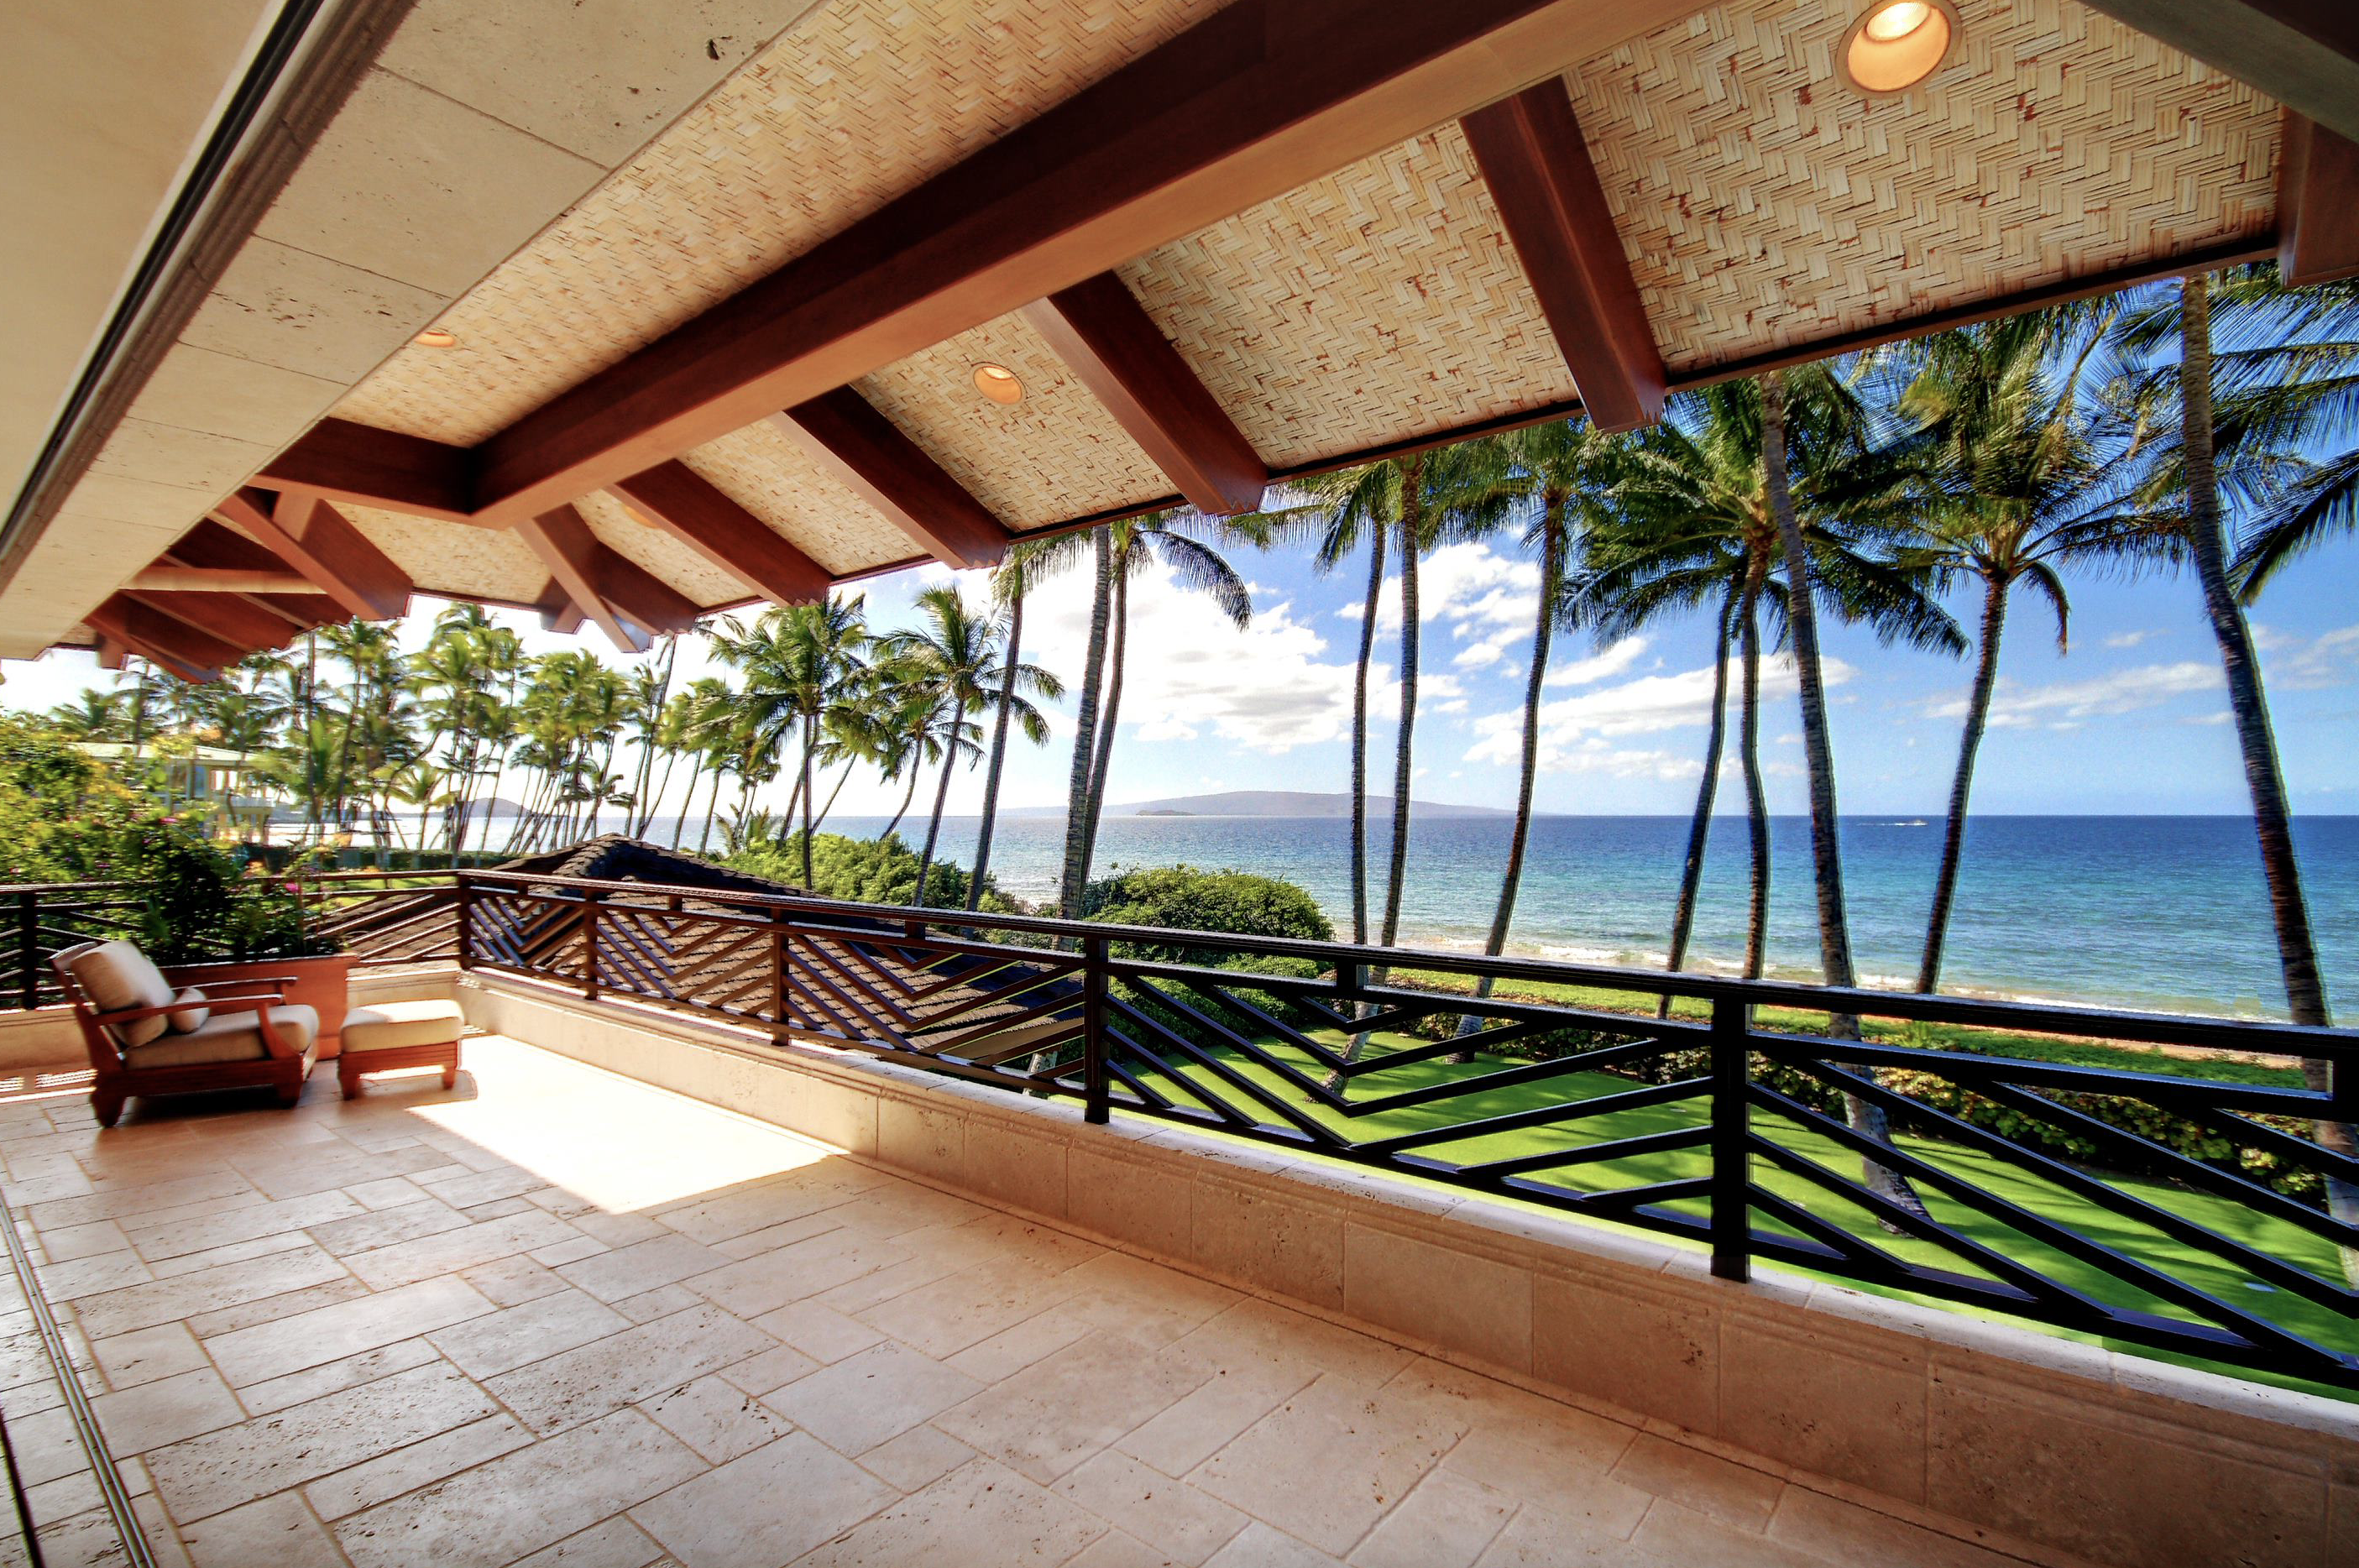 Maui Median Price of Single-Family Home Remains Over $1 Million in July